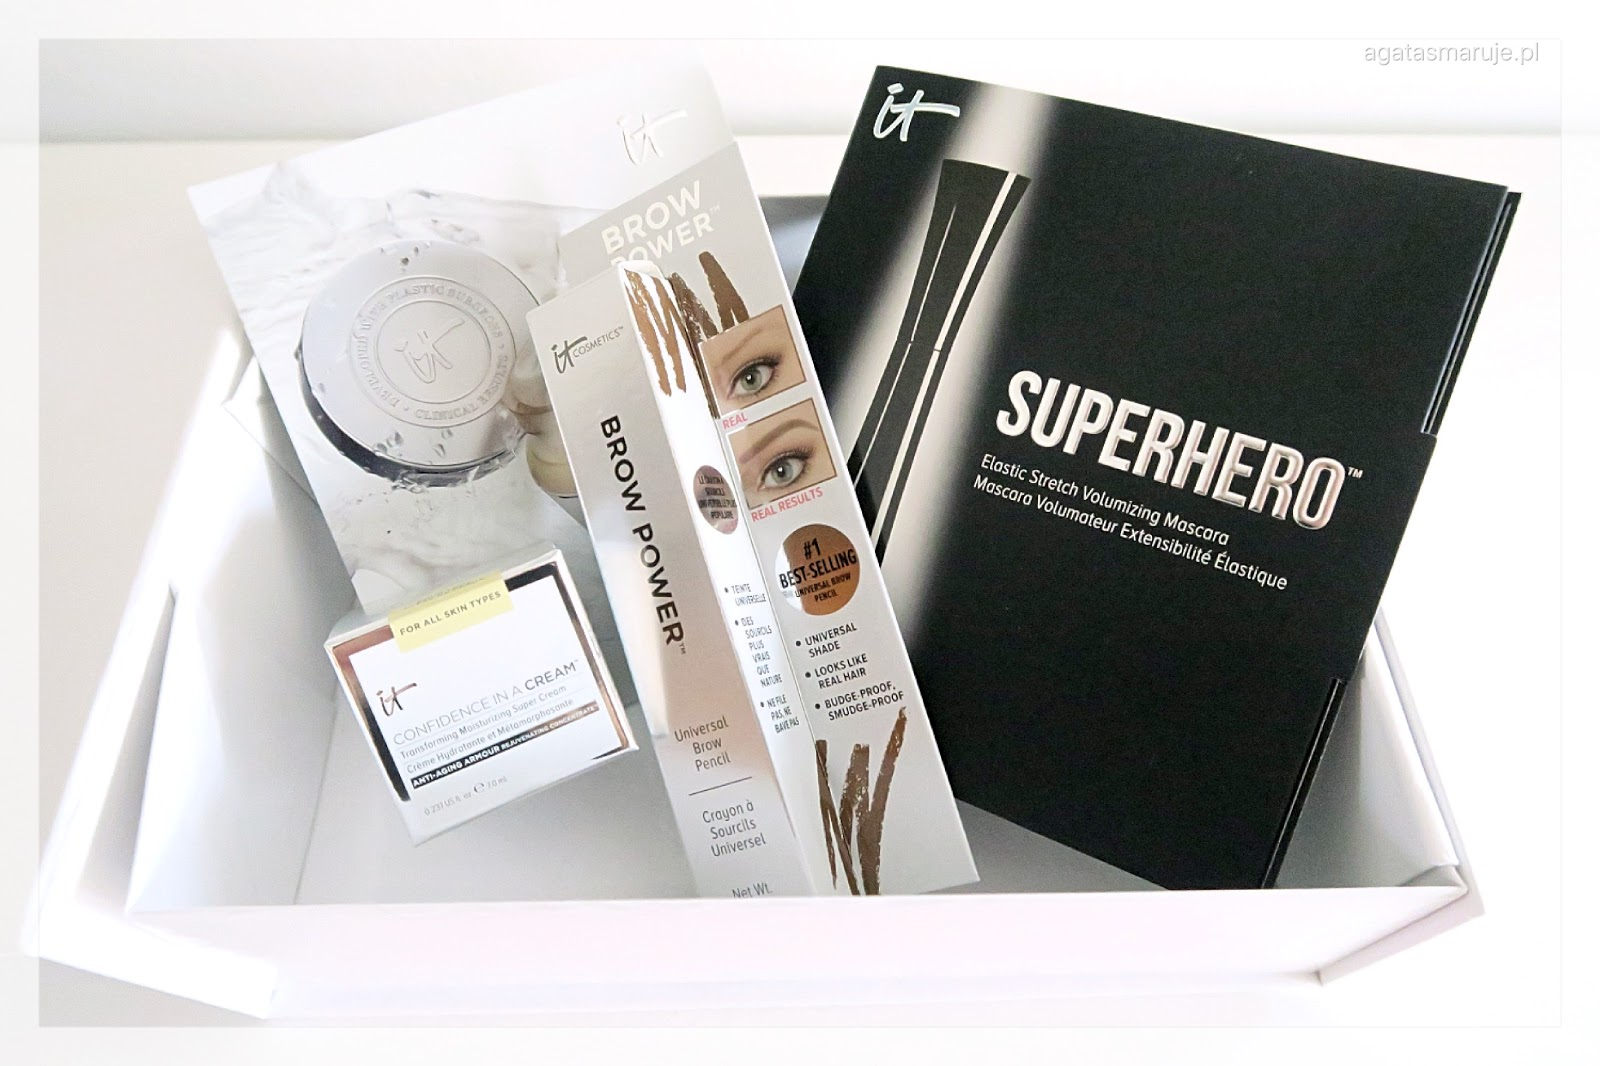 It Cosmetics Brow Powder, Confidence In A Cream, mascara Superhero